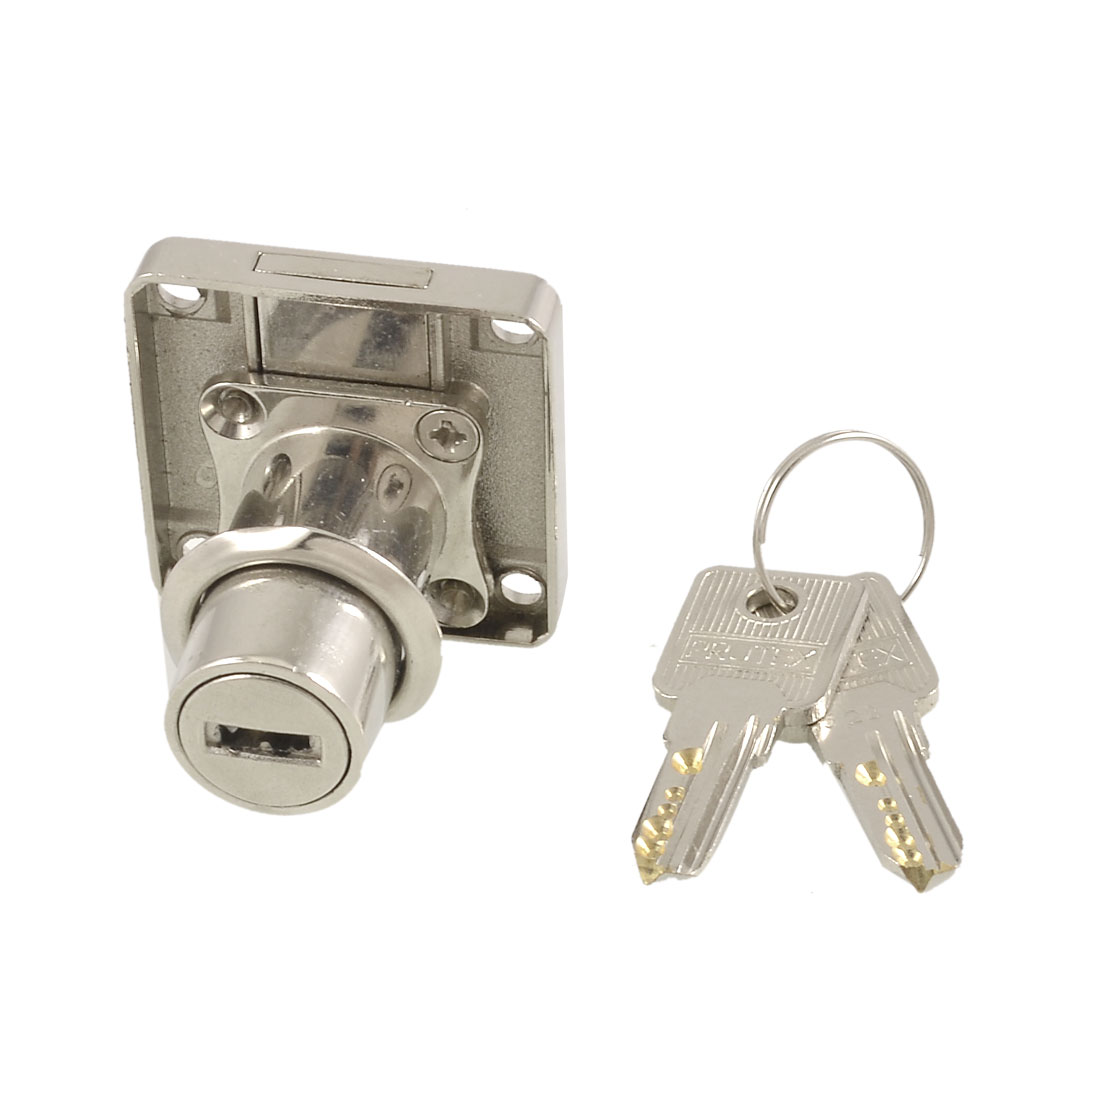 Cabinets Drawers 30mm Cylinder Bolt Lock Keys Set Silver Tone